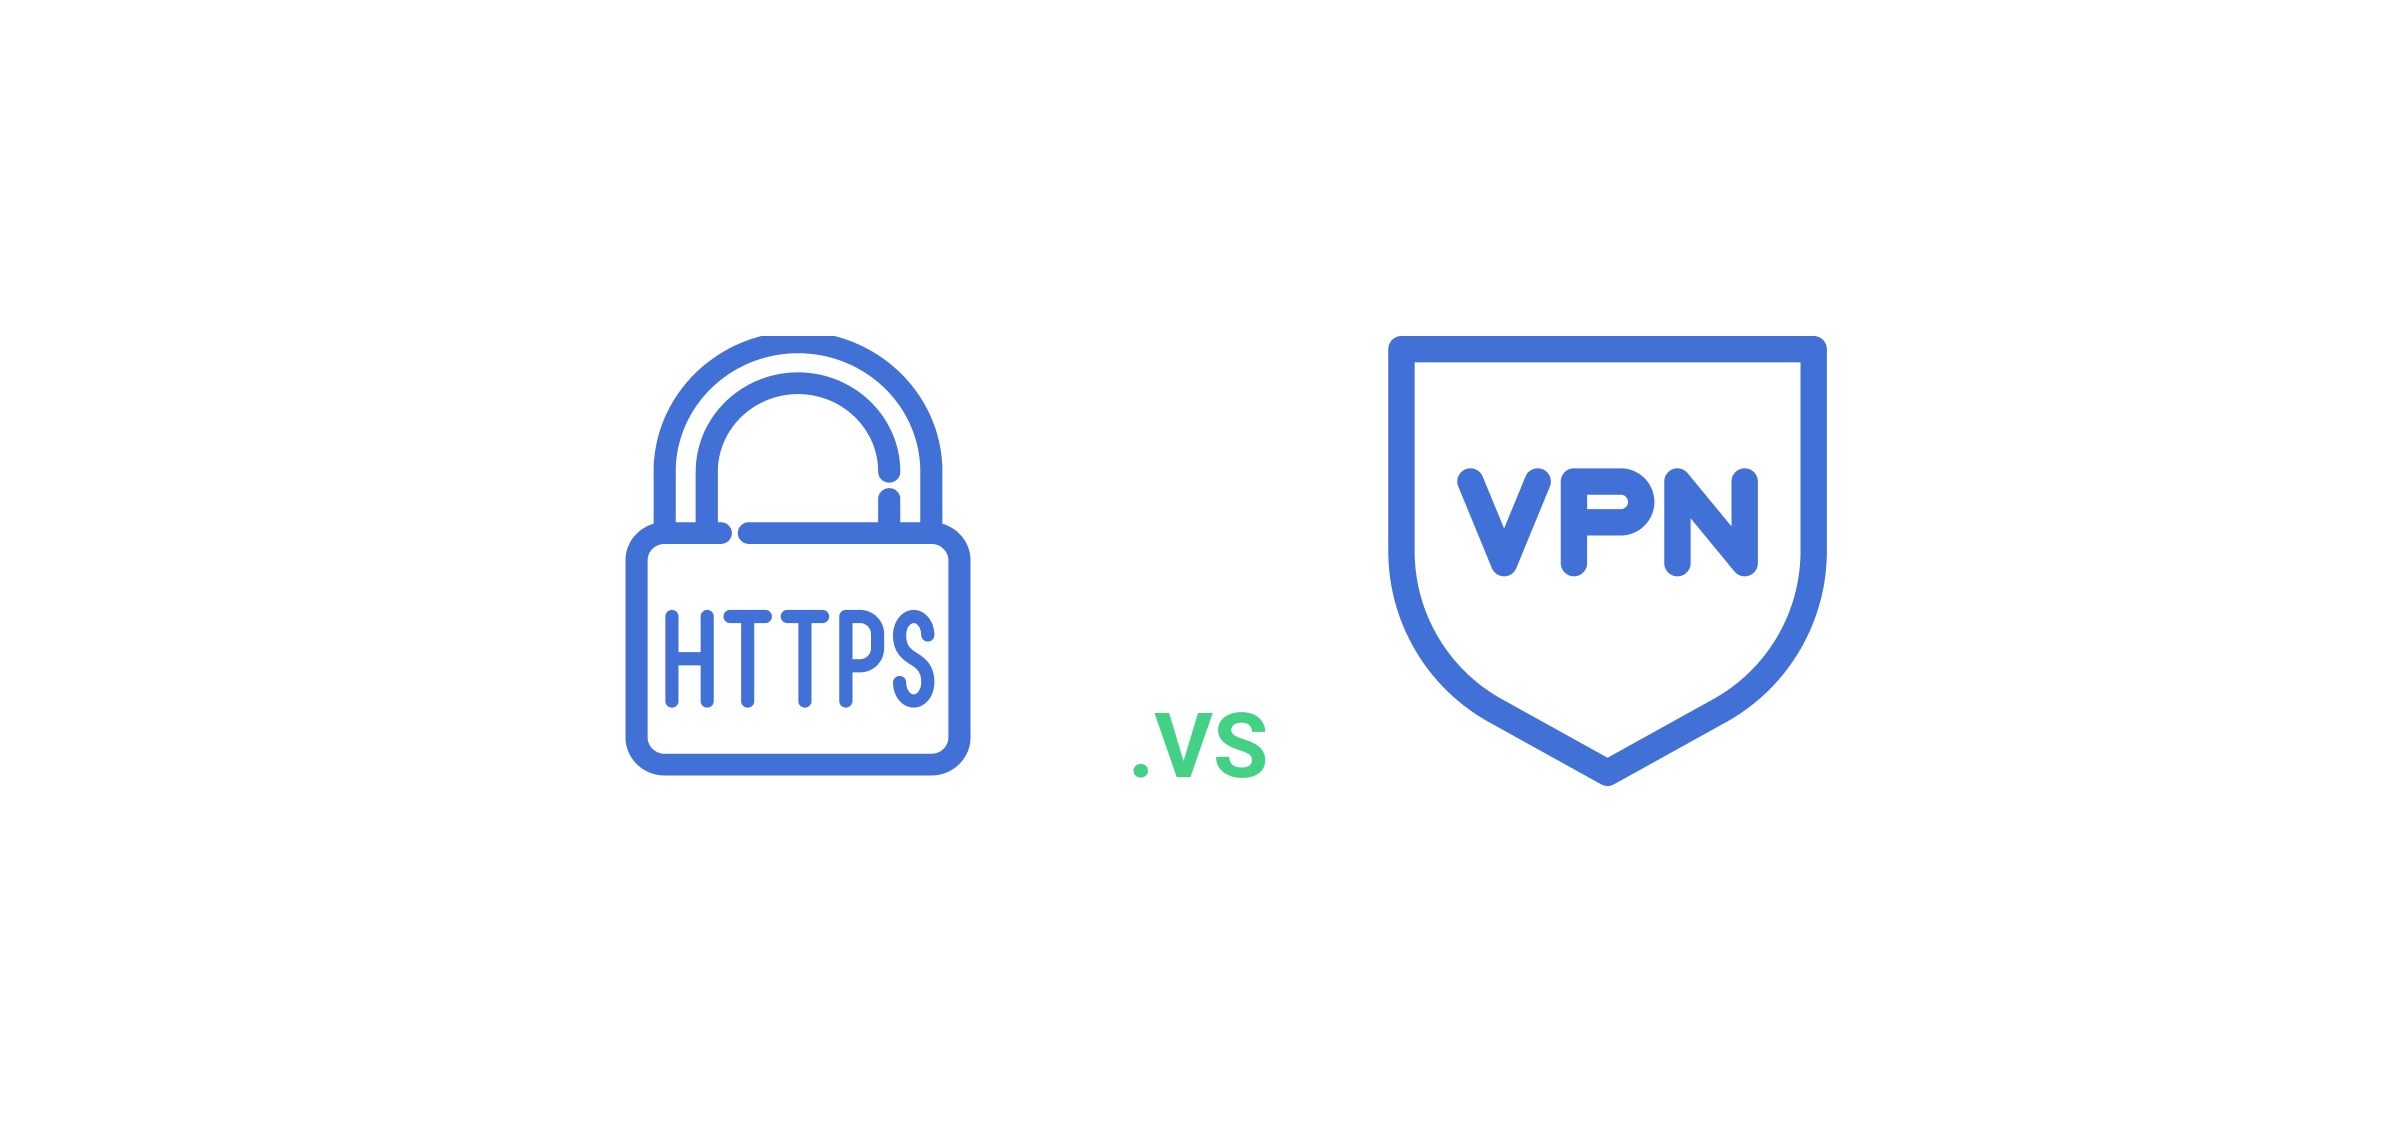 HTTPS vs VPN: Why You Should Use Both